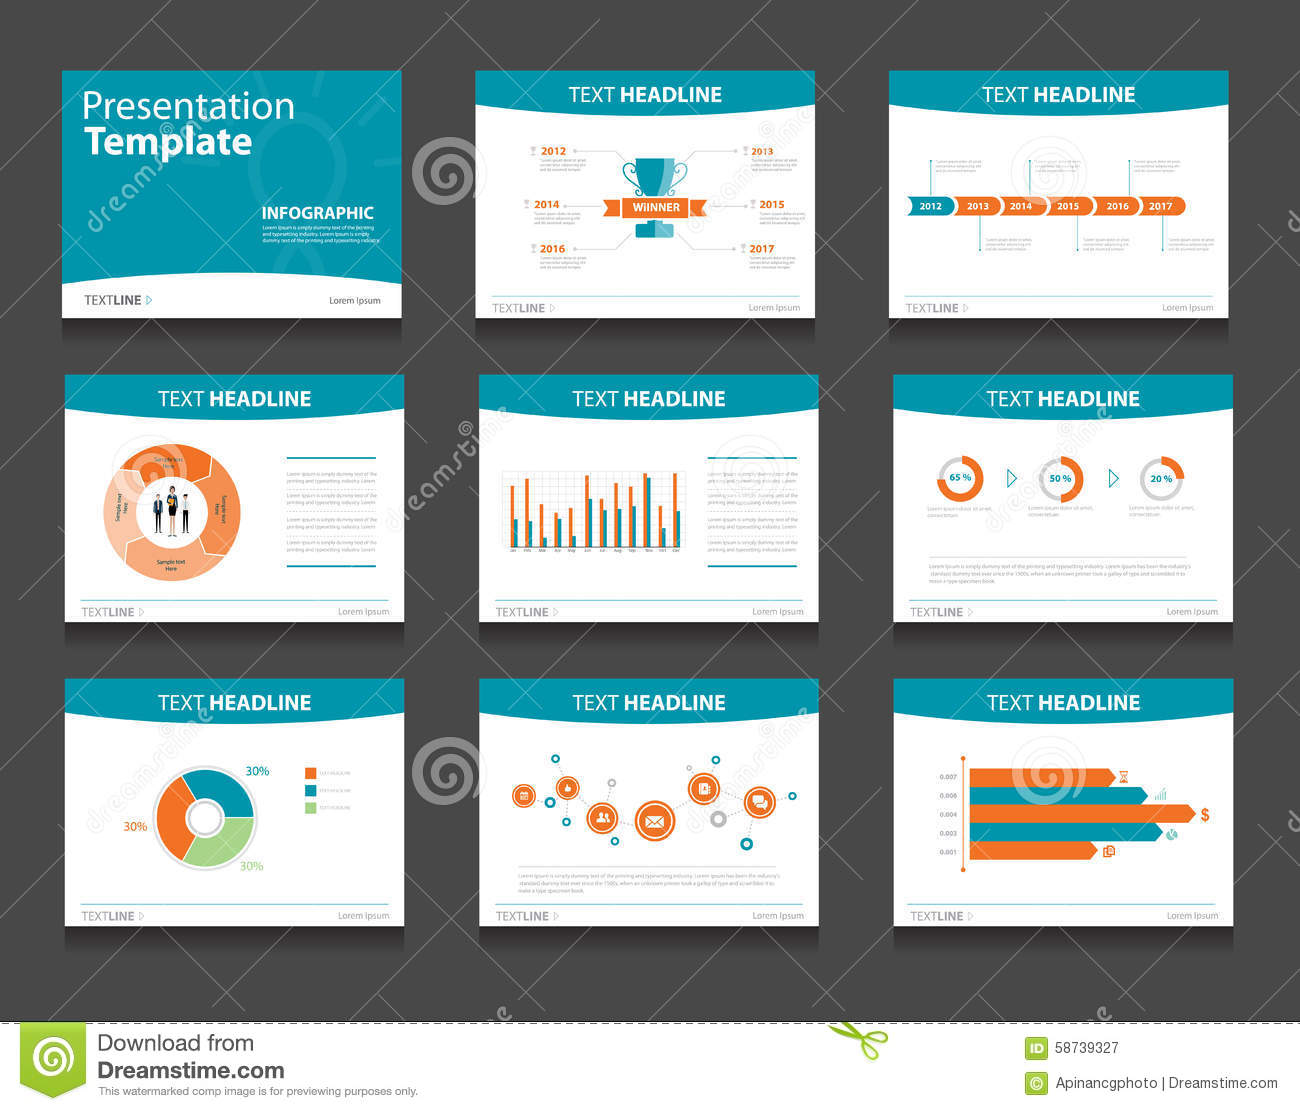 Infographic powerpoint template design backgrounds business infographic powerpoint template design backgrounds business presentation template set cheaphphosting Image collections